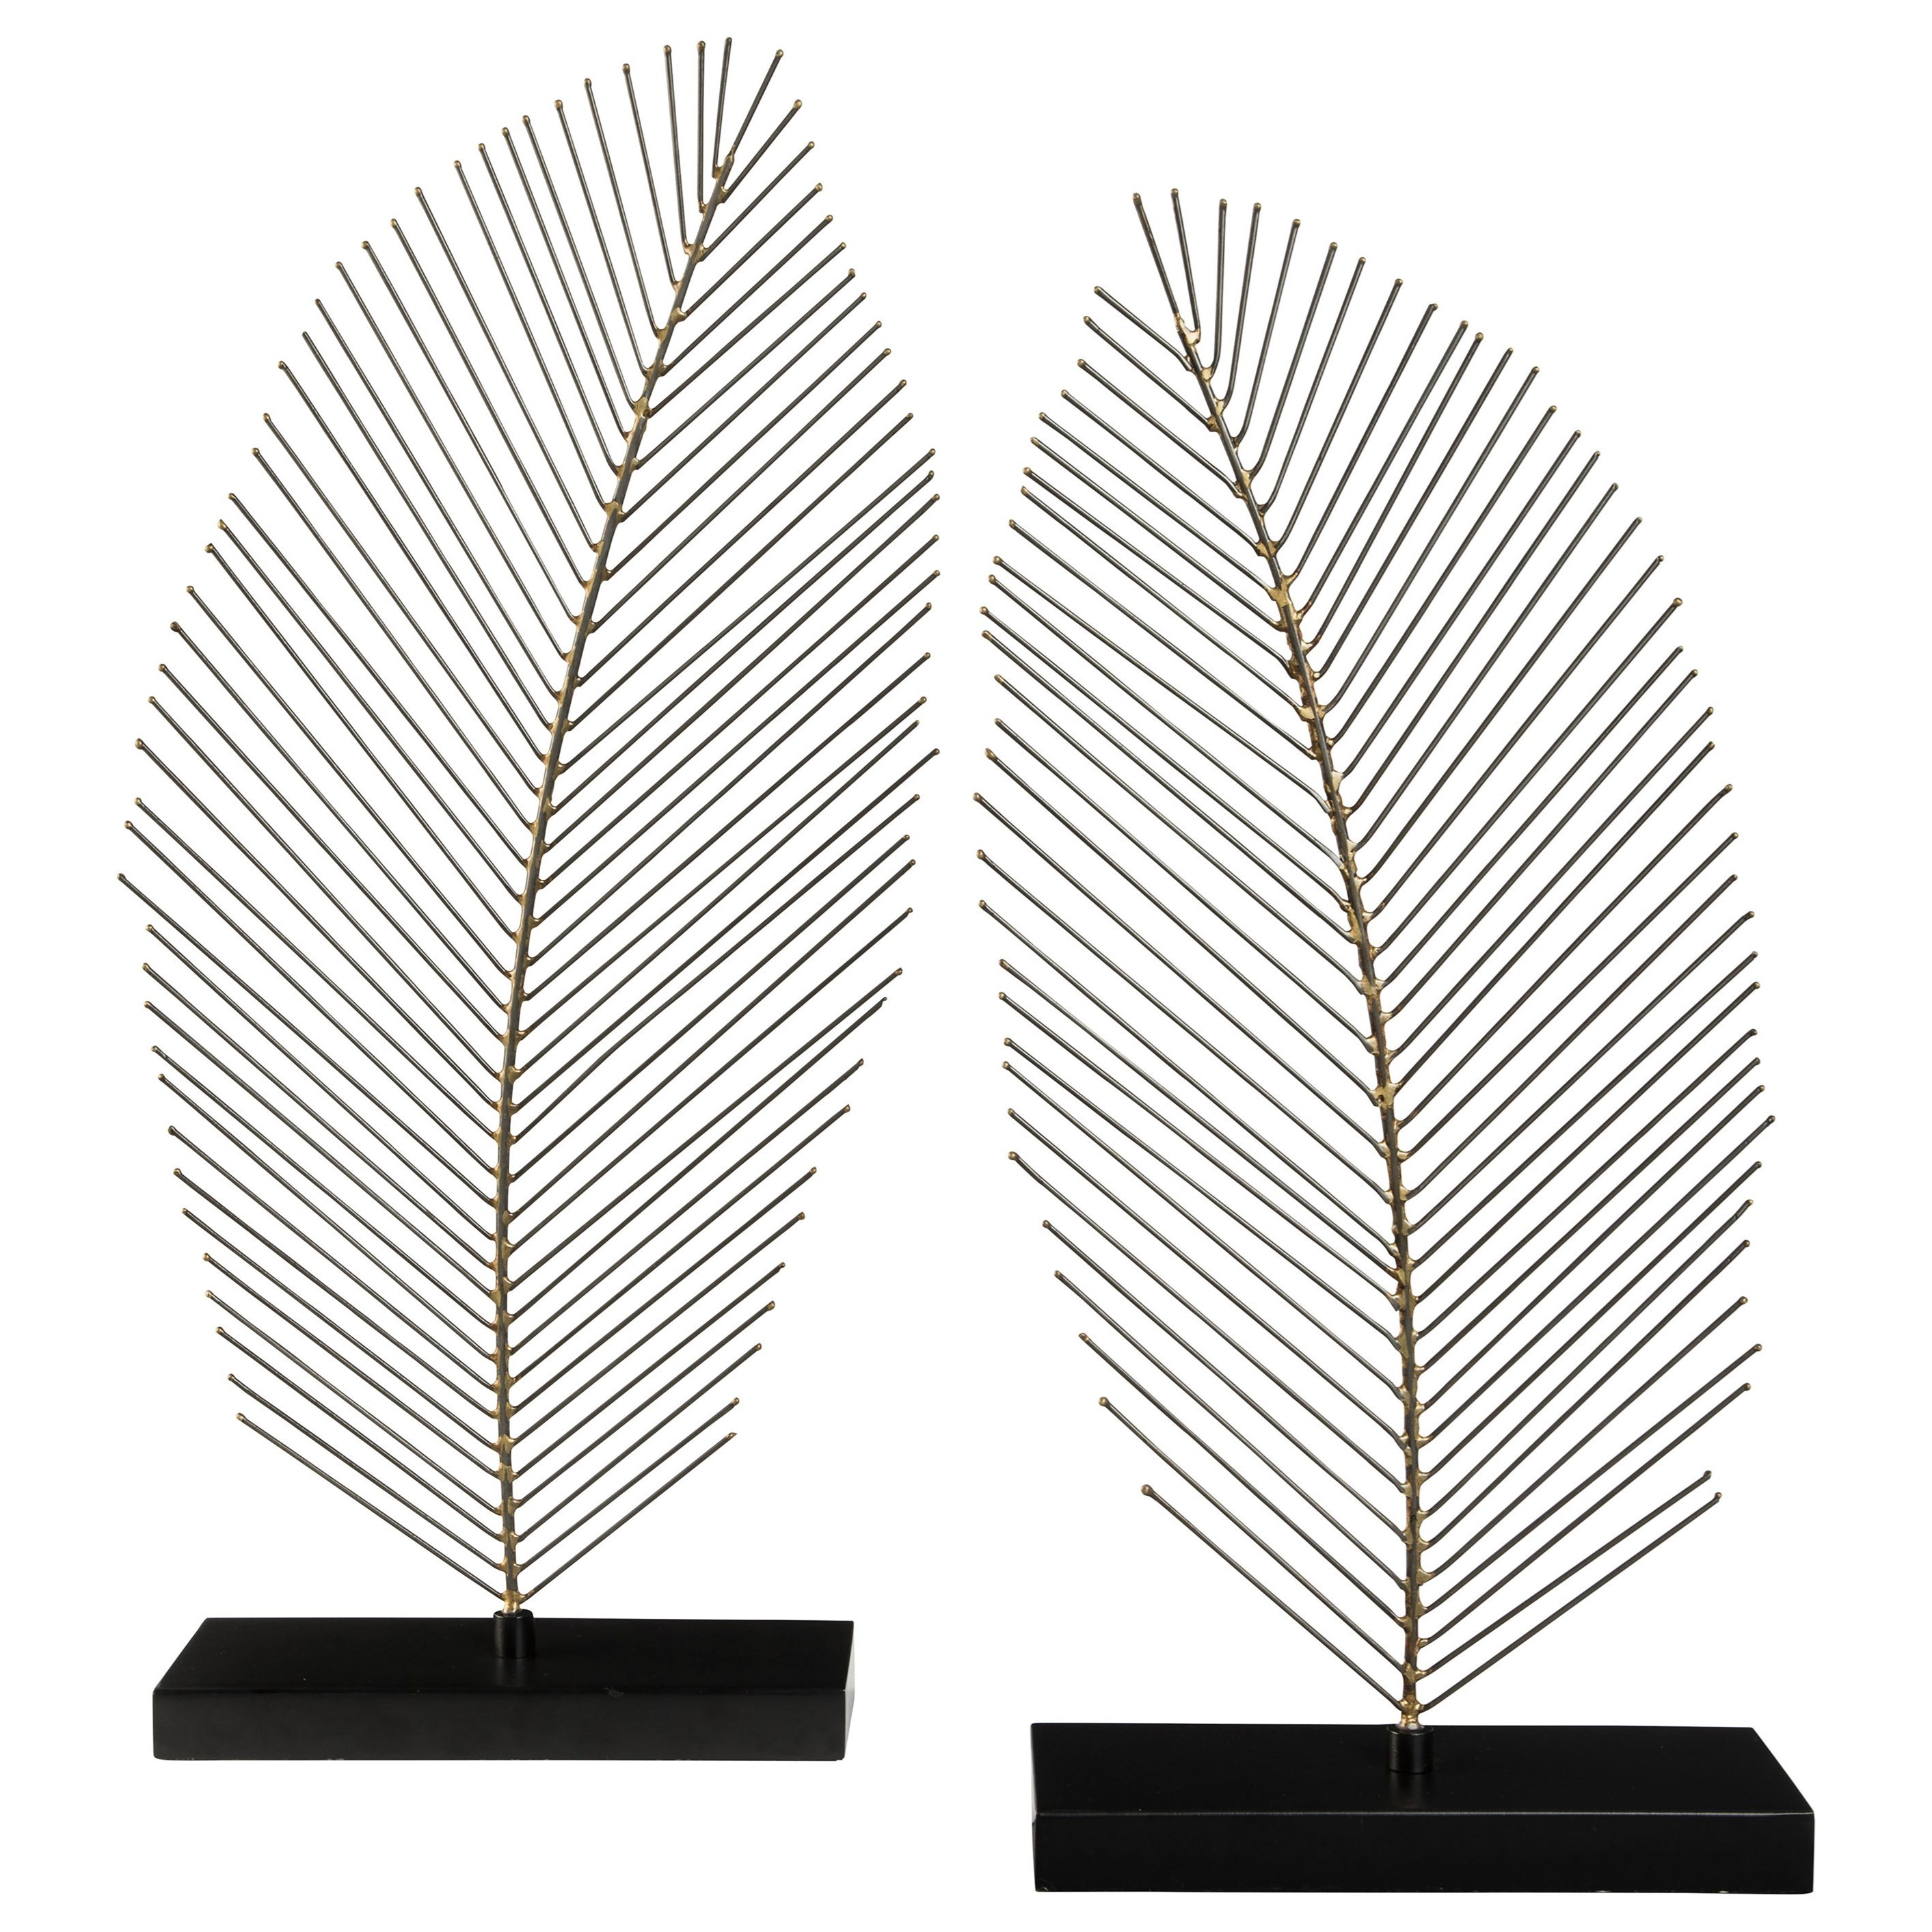 Eleutheria Gray/Black Sculpture Set